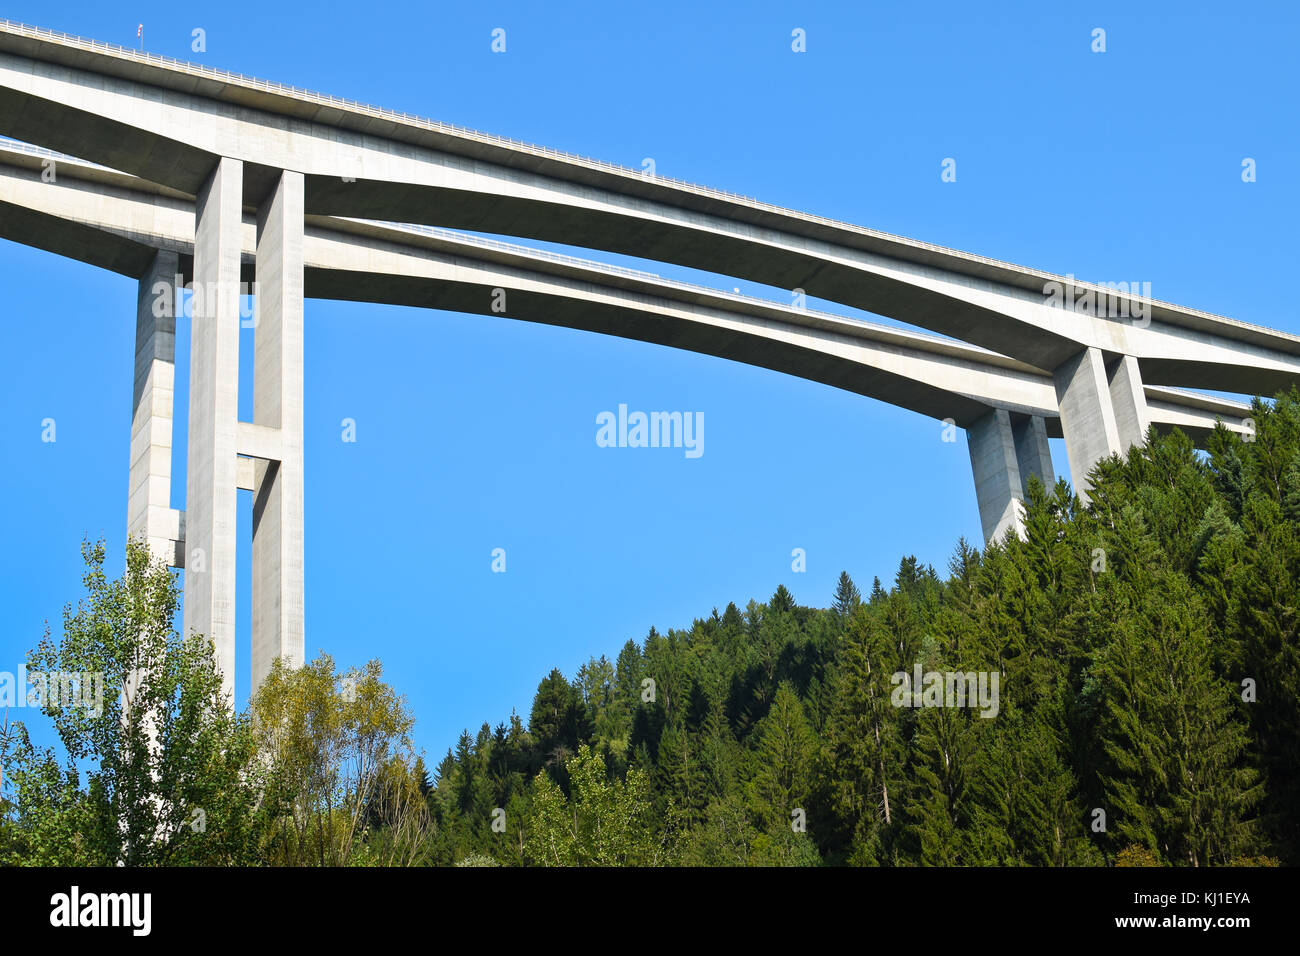 Detail of Highway Bridge from Bellow with Blue Sky - Stock Image